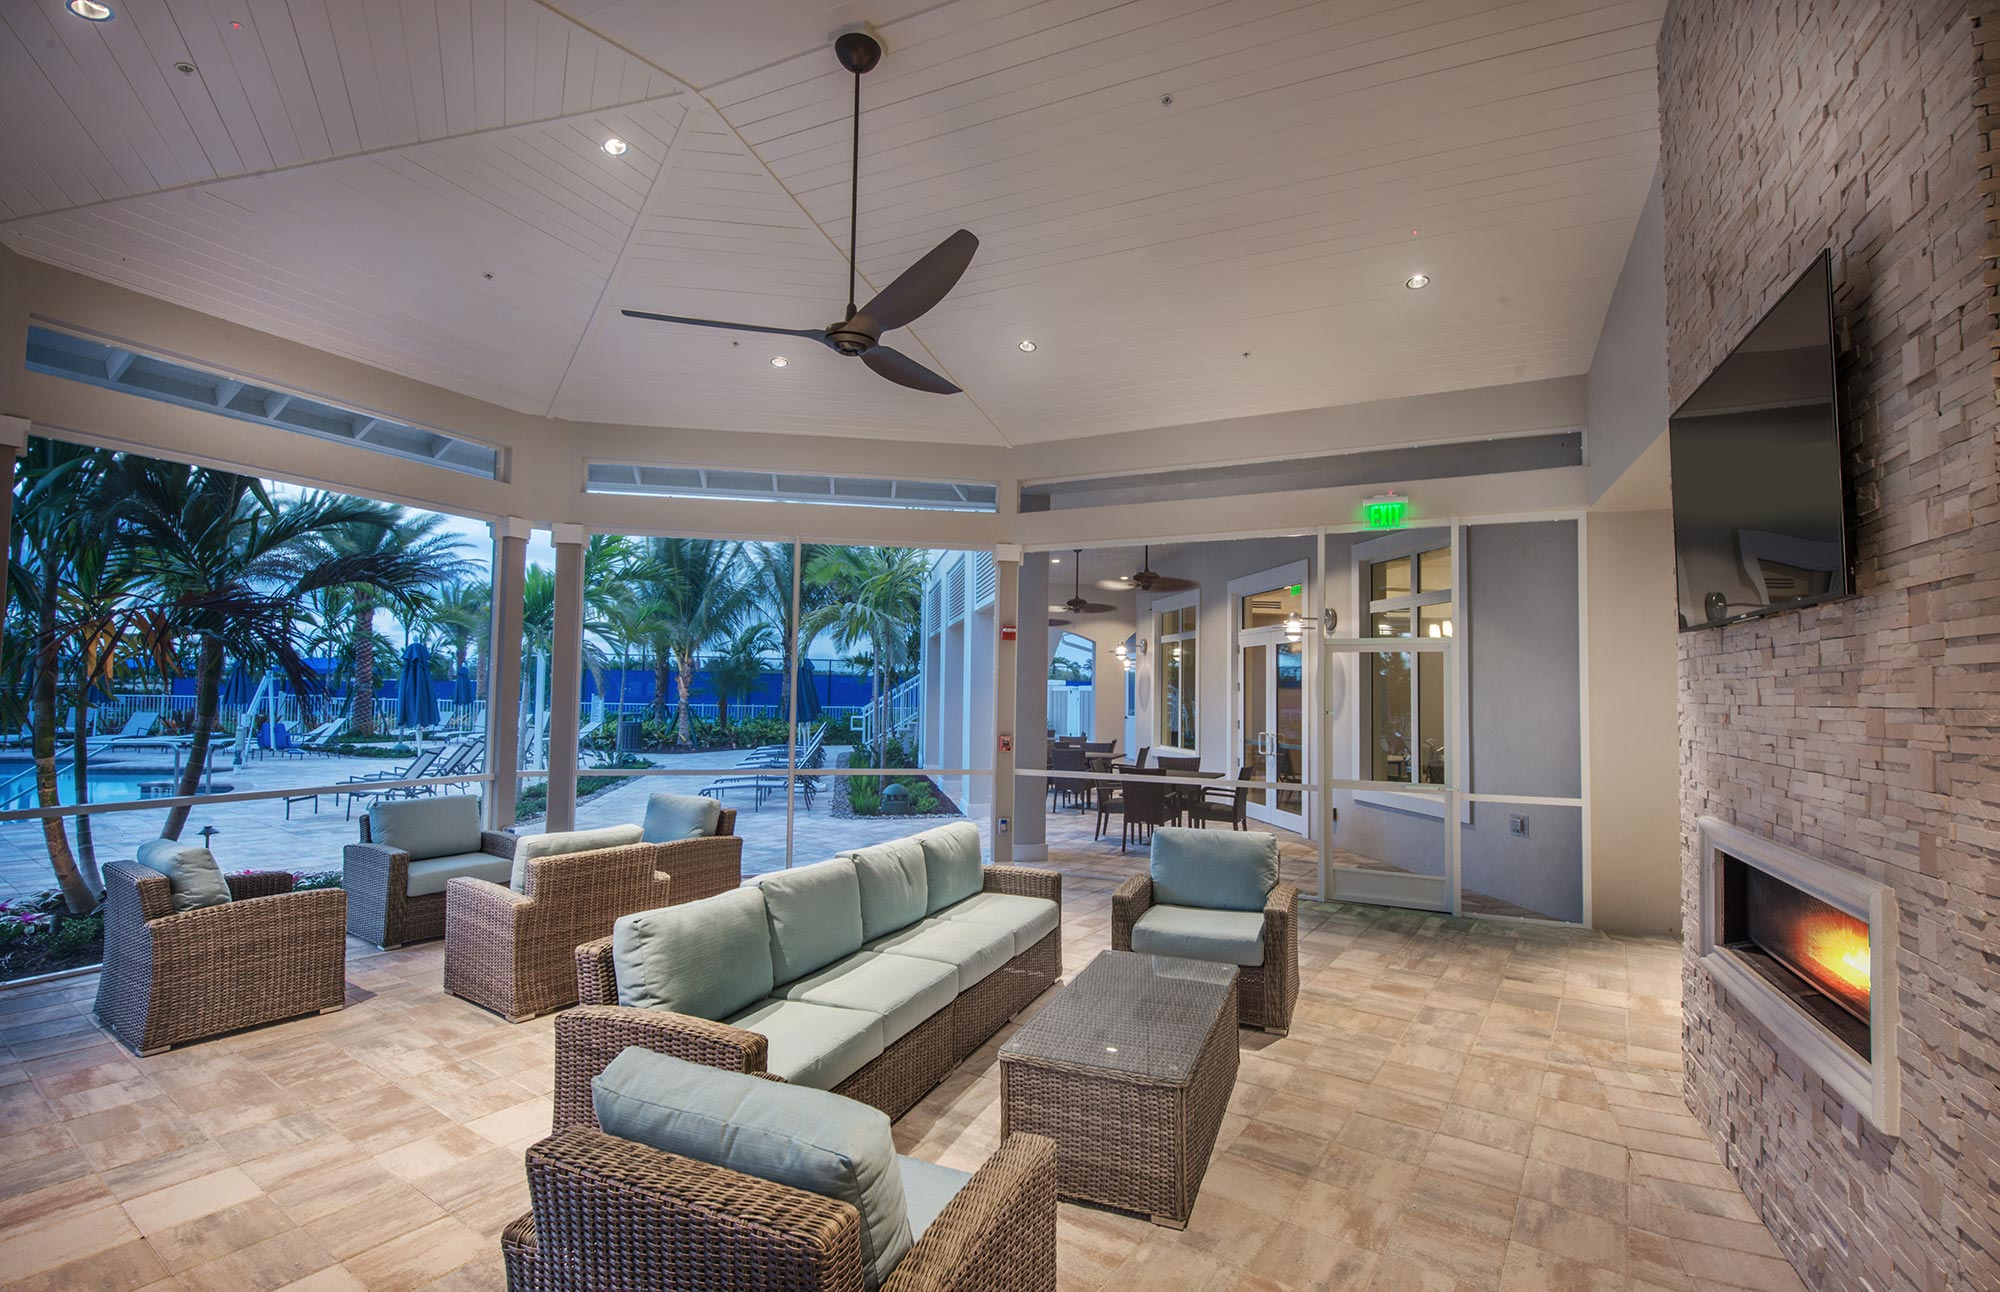 Screened porch with fireplace and pool deck beyond.